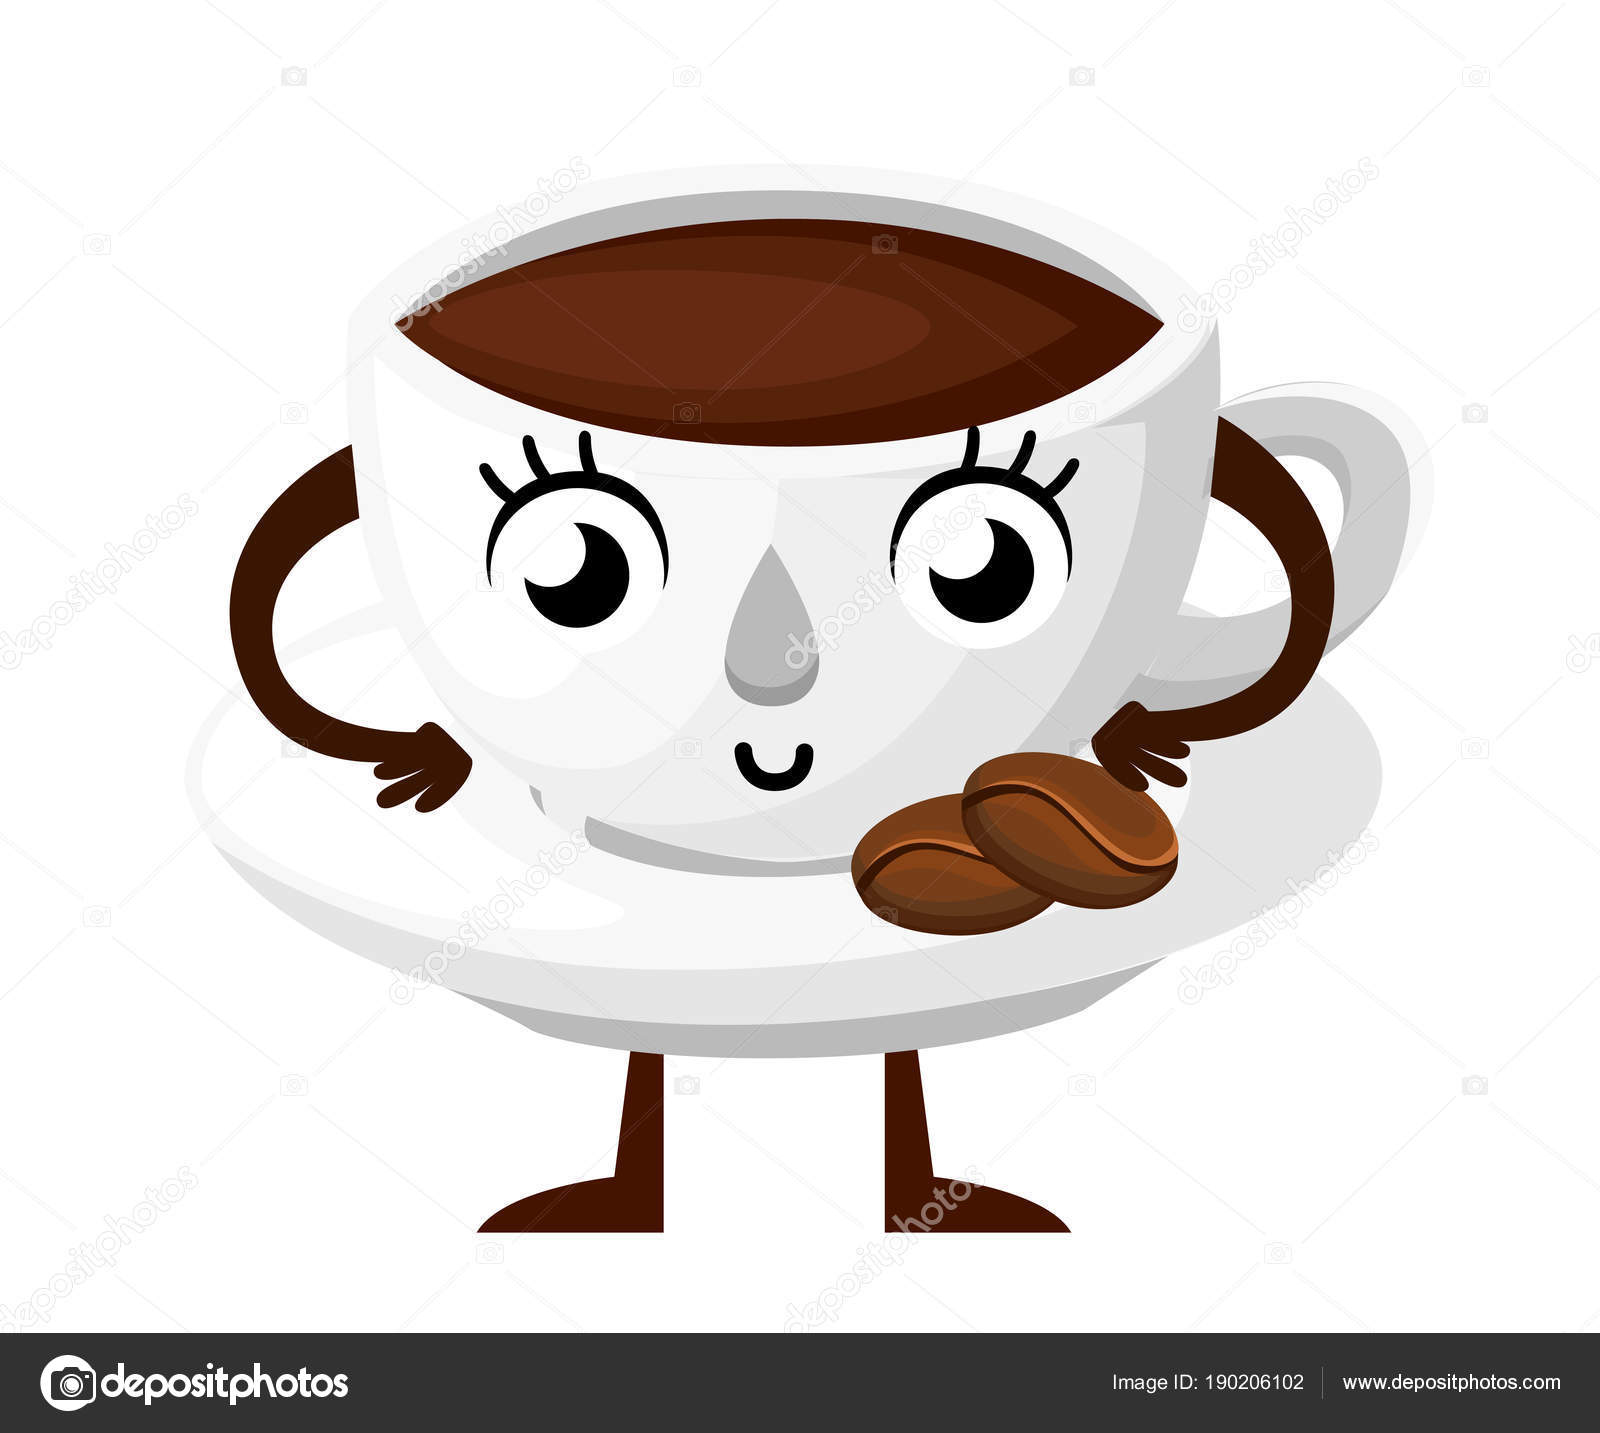 Cup of coffee with saucer  Cartoon style character design  Mascot